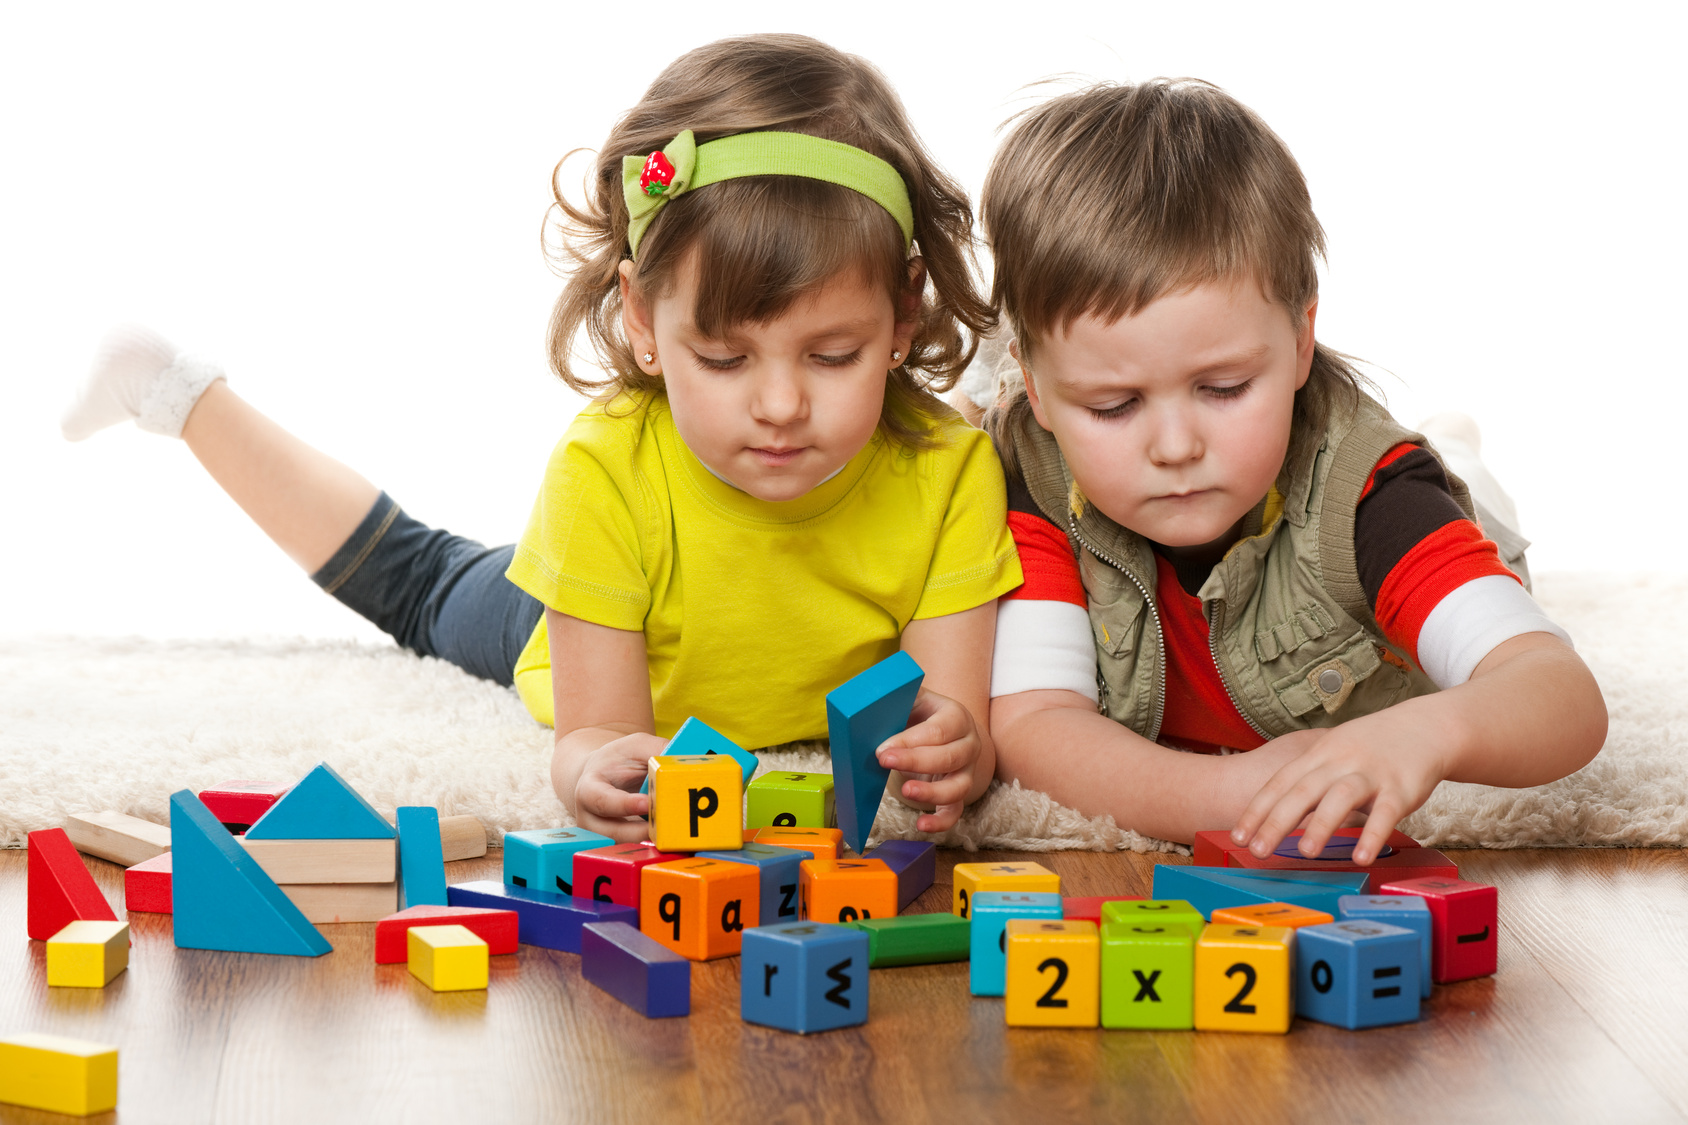 How can I get my child excited about math?